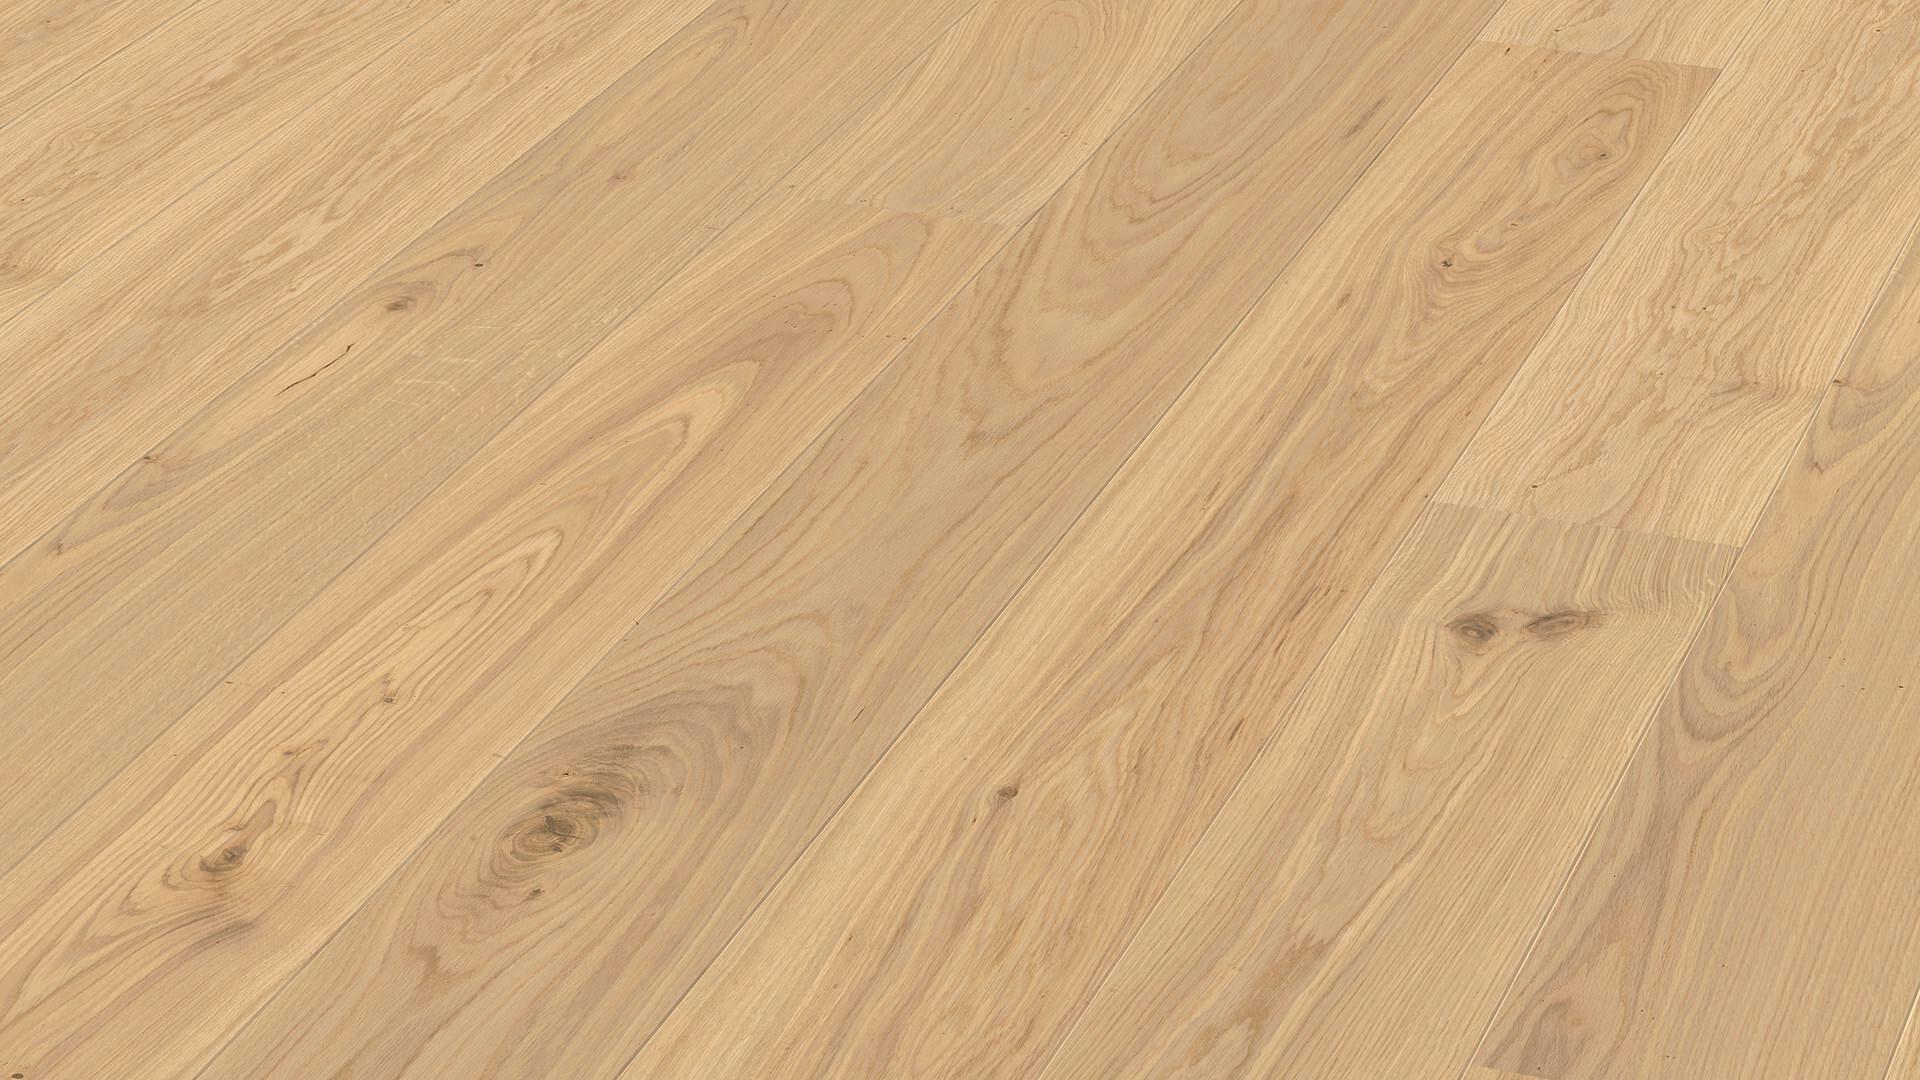 Parquet MeisterParquet. longlife PD 400 Roble vivo claro natural 8552